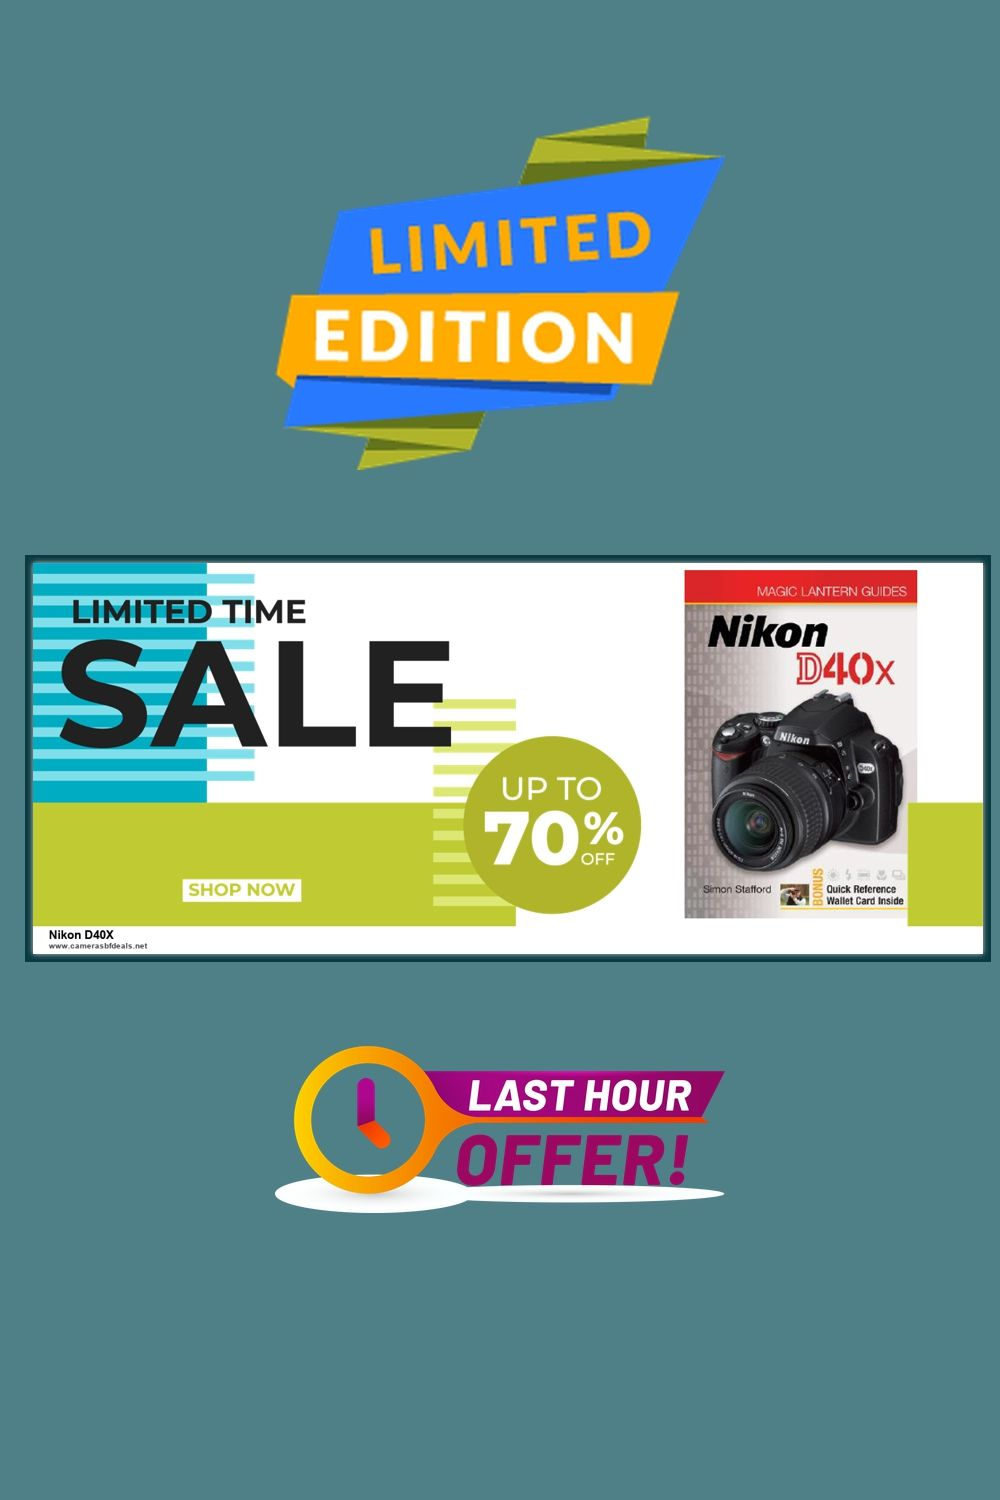 Top 9 Nikon D40x Black Friday And Cyber Monday Deals 2020 In 2020 Nikon D40x Nikon Cyber Monday Deals